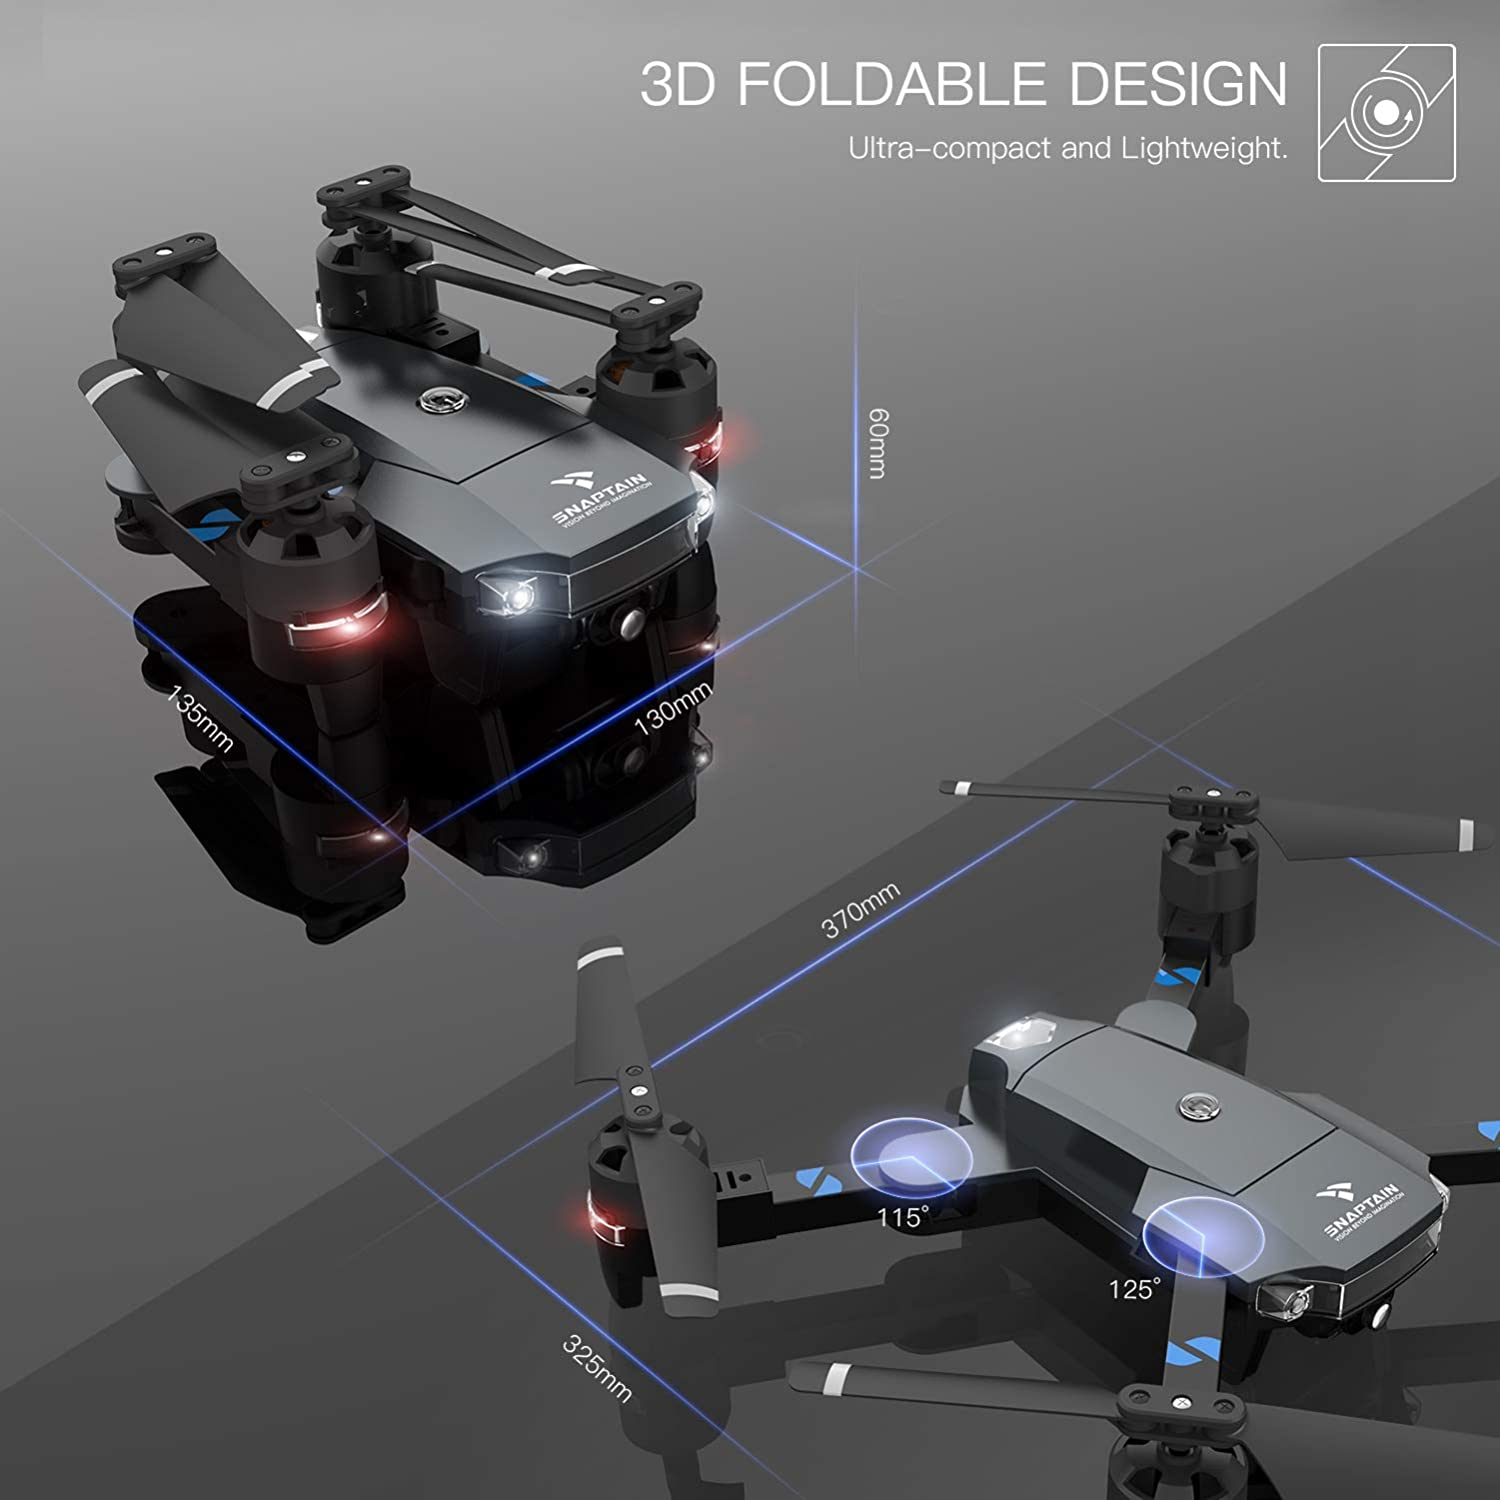 snaptain a15 foldable fpv wifi drone review